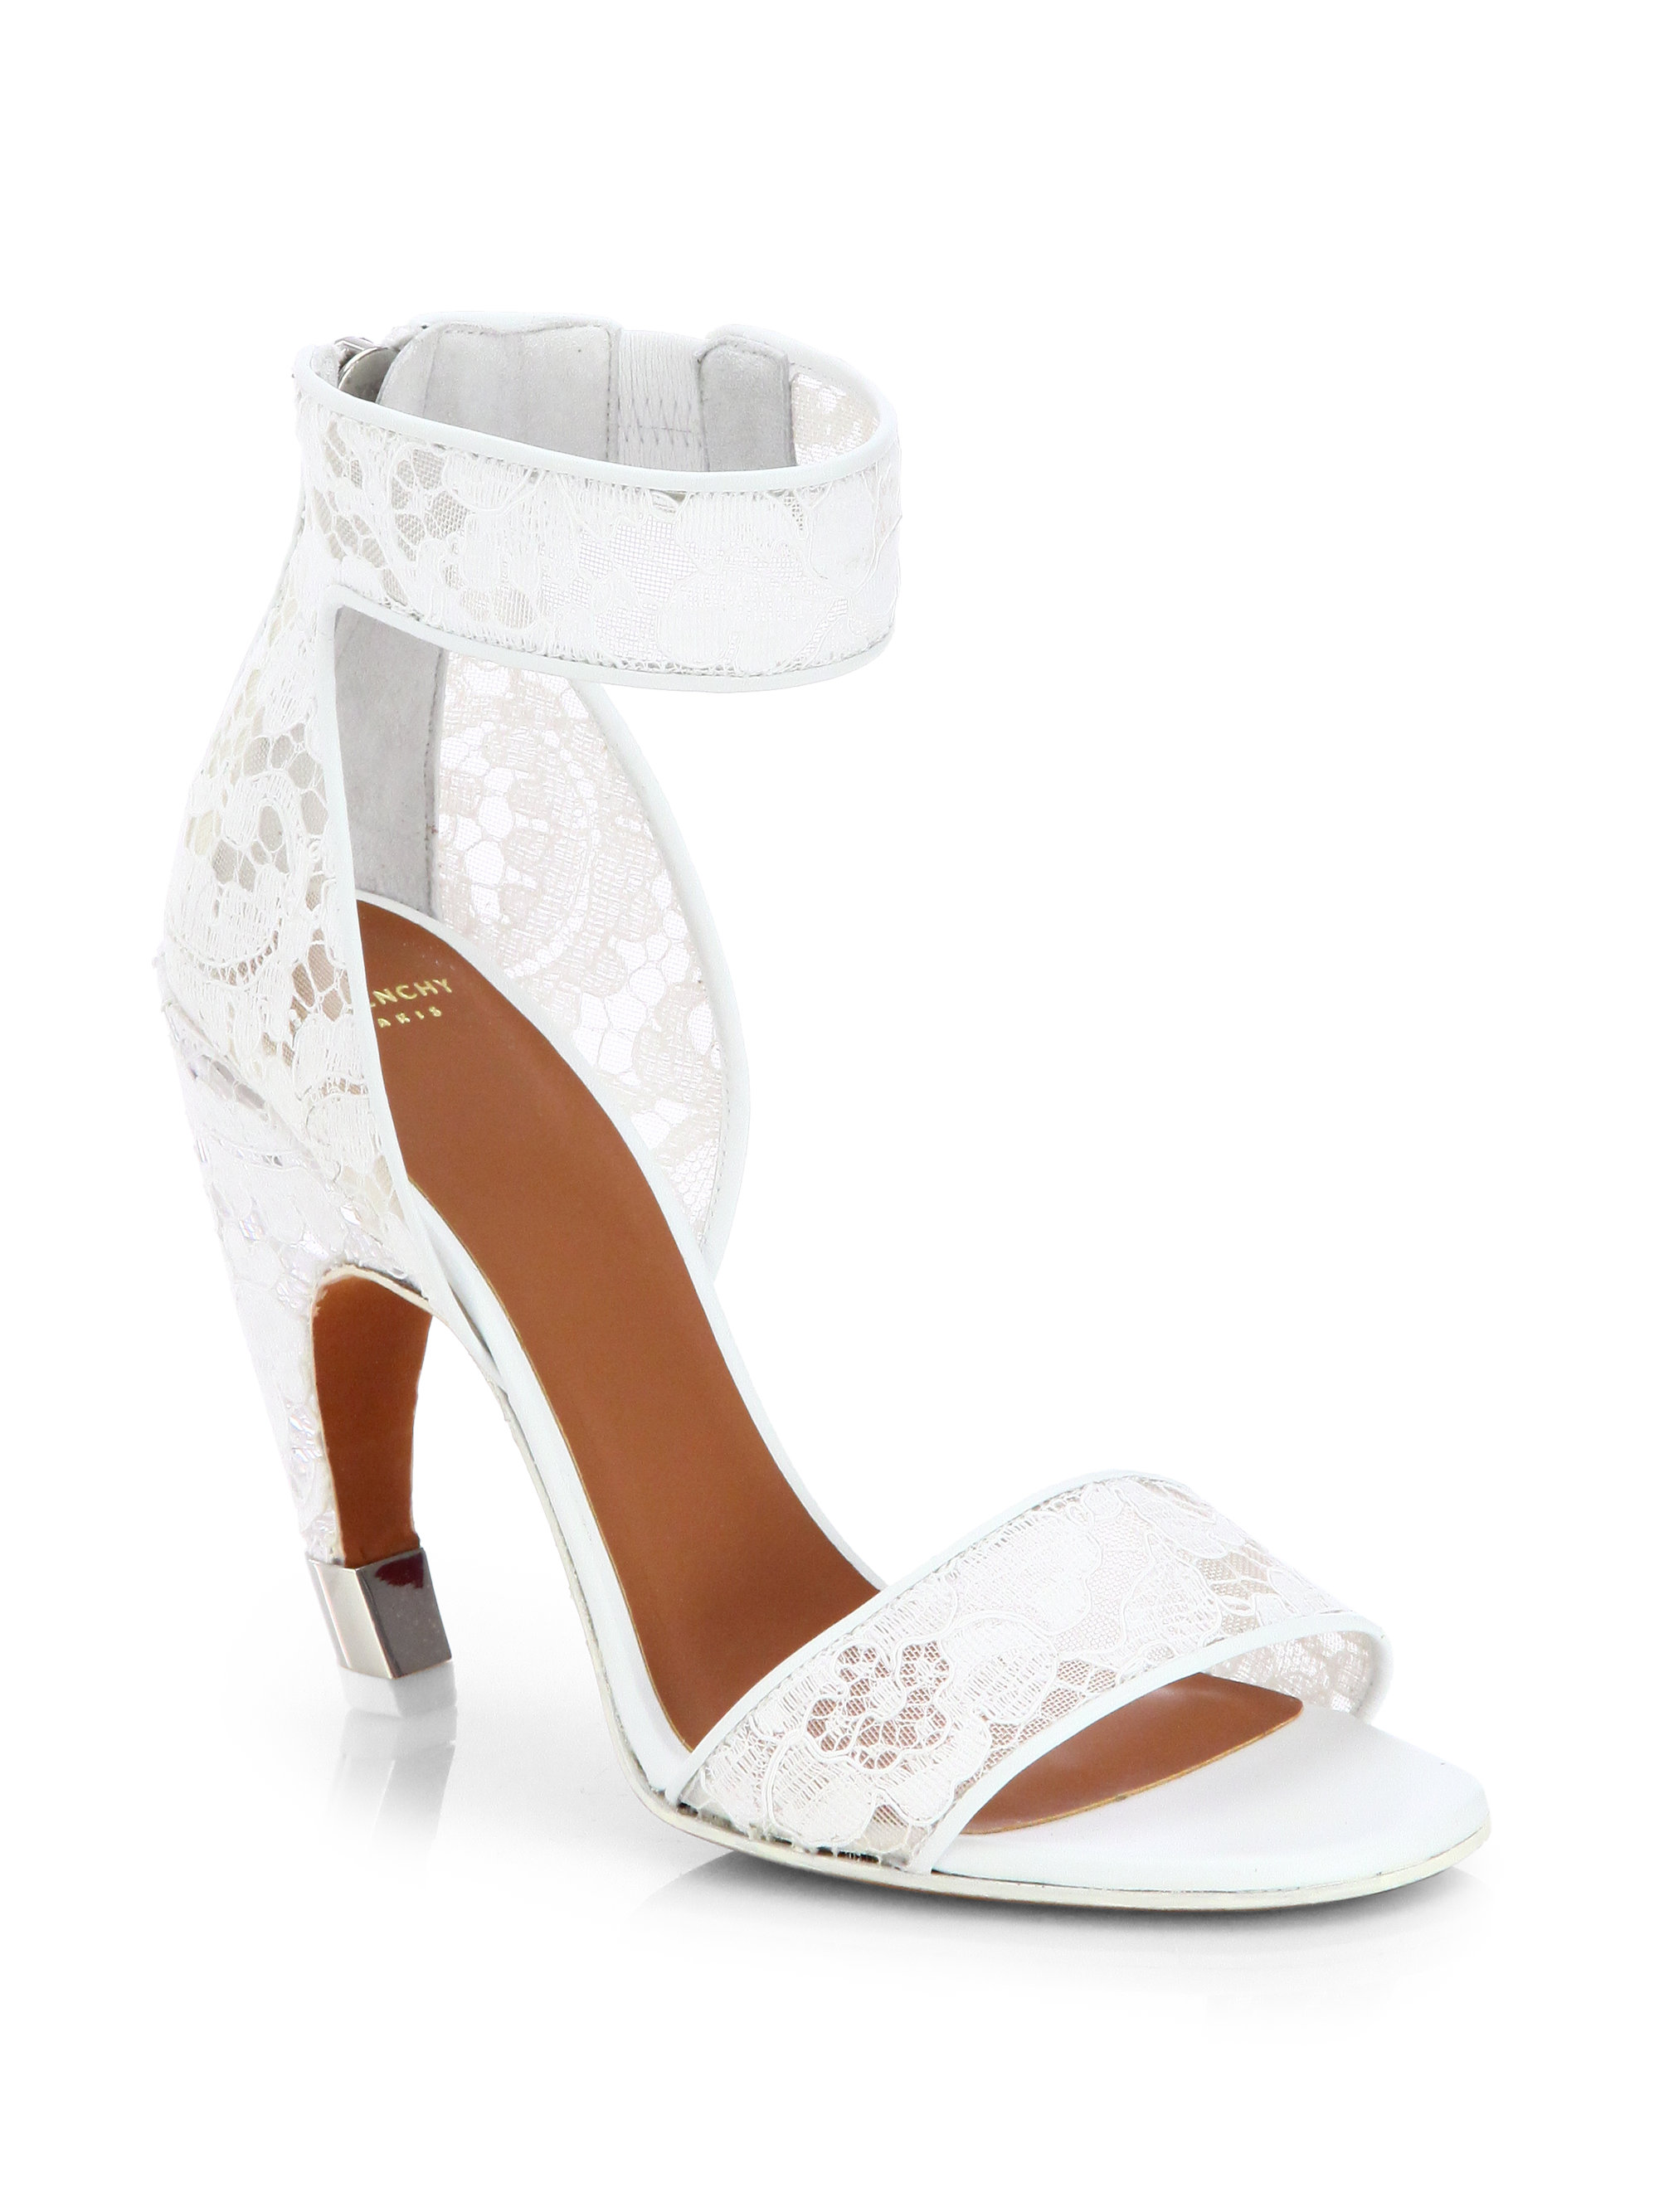 Givenchy Macrame Lace Sandals in